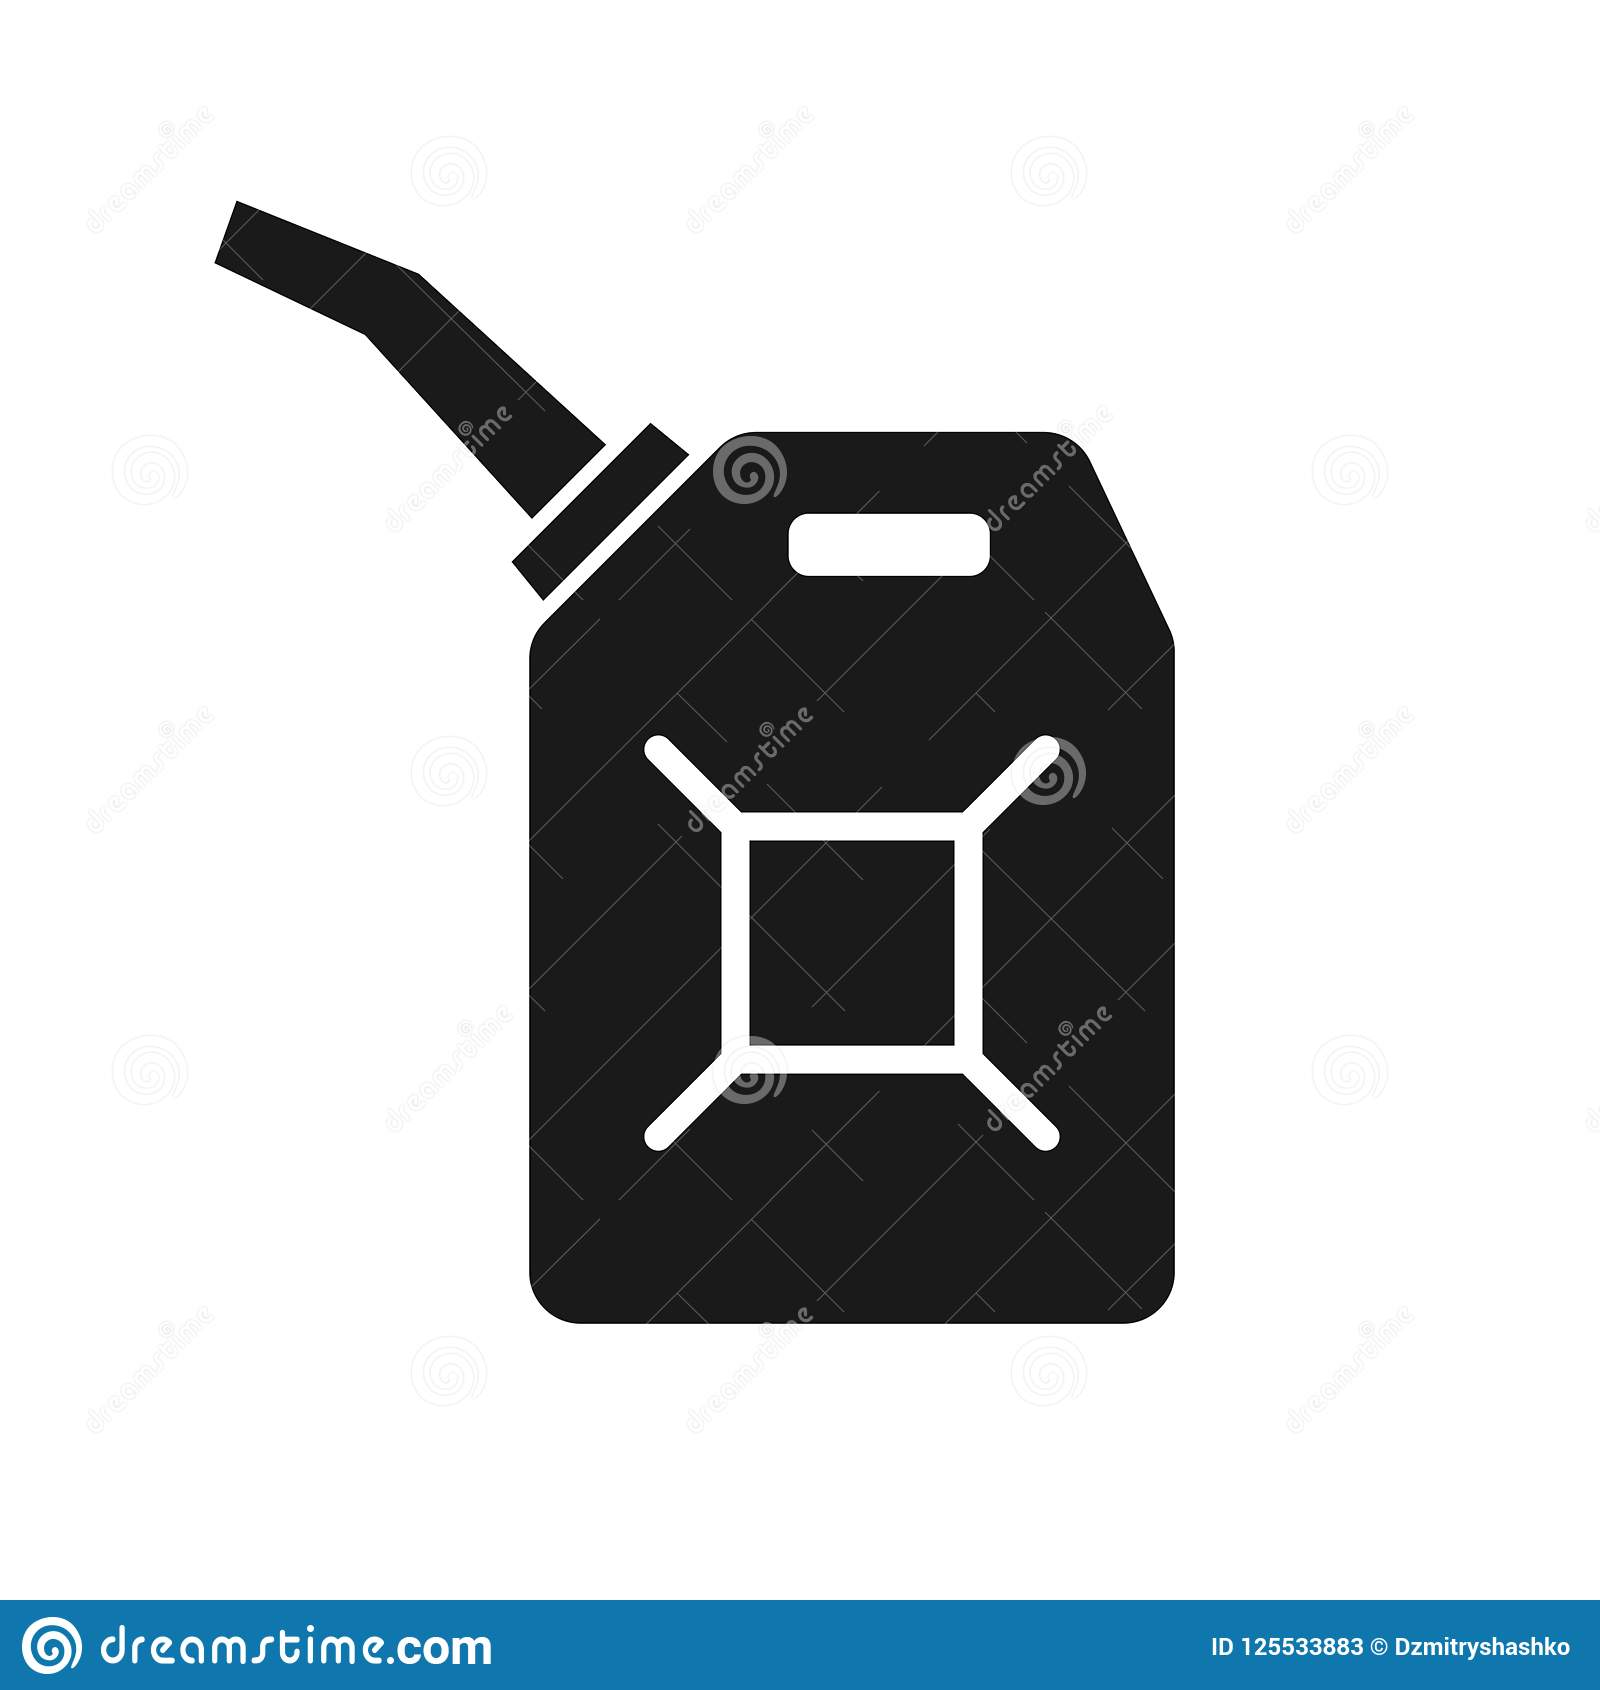 Canister of gasoline icon stock vector. Illustration of energy.